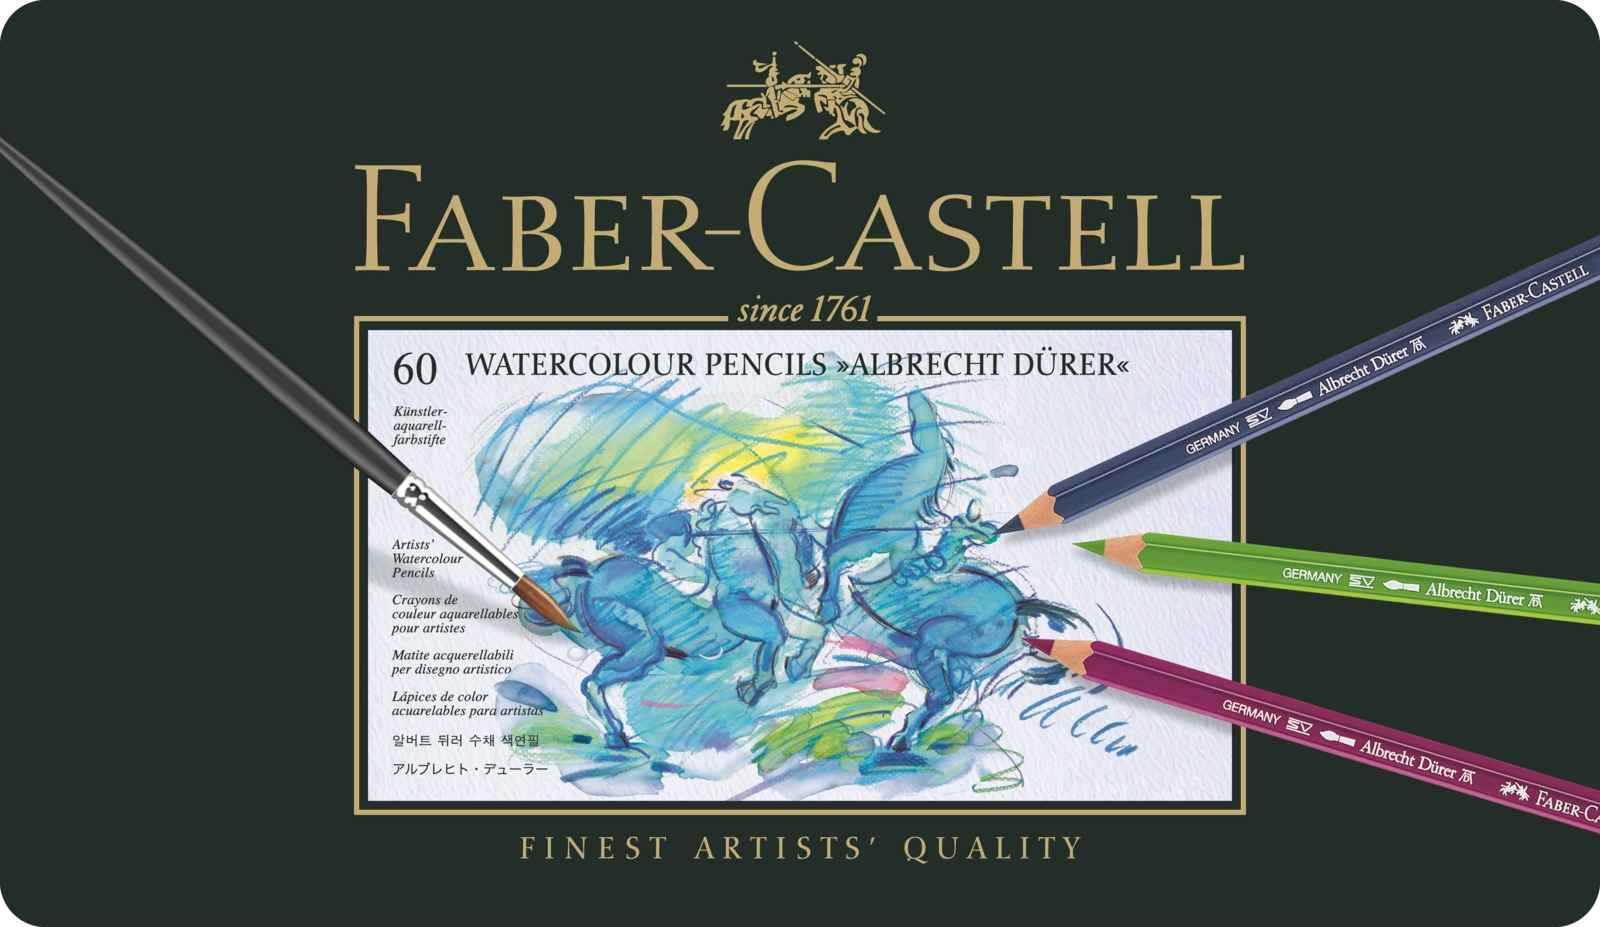 Faber-Castell: Albrecht Durer Pencil (Tin of 60) image